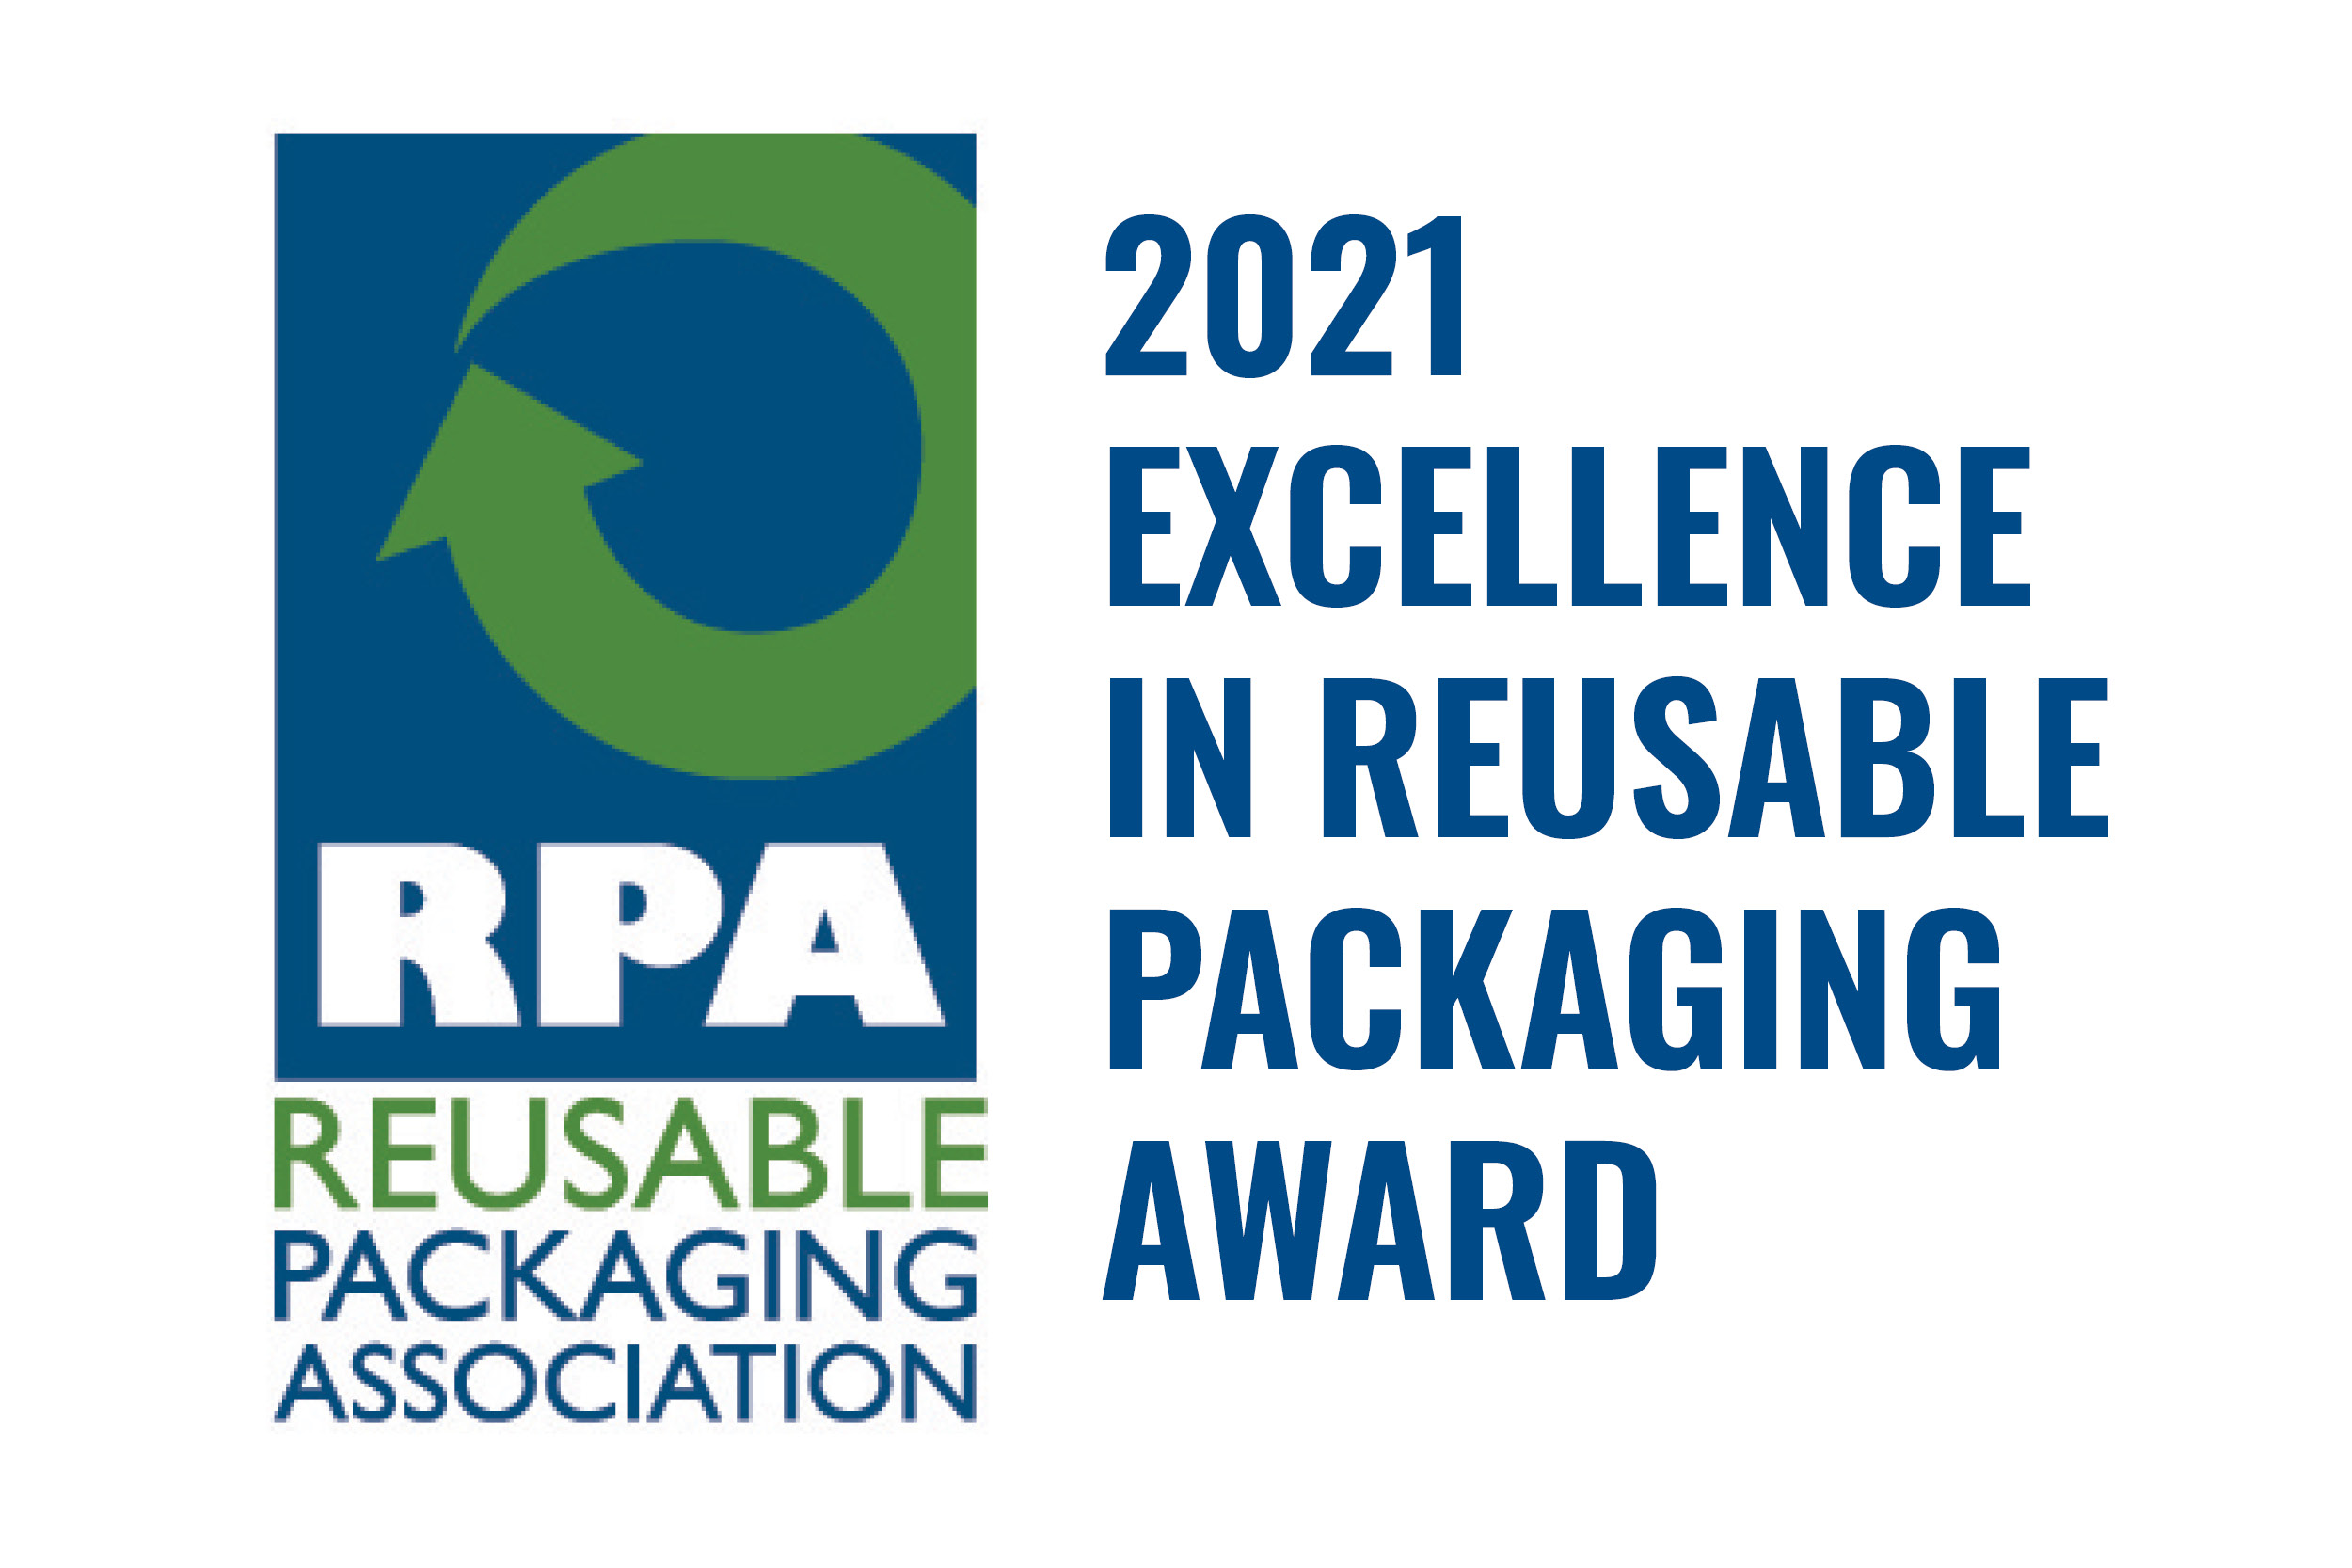 Call for Entries: 2021 Excellence in Reusable Packaging Award